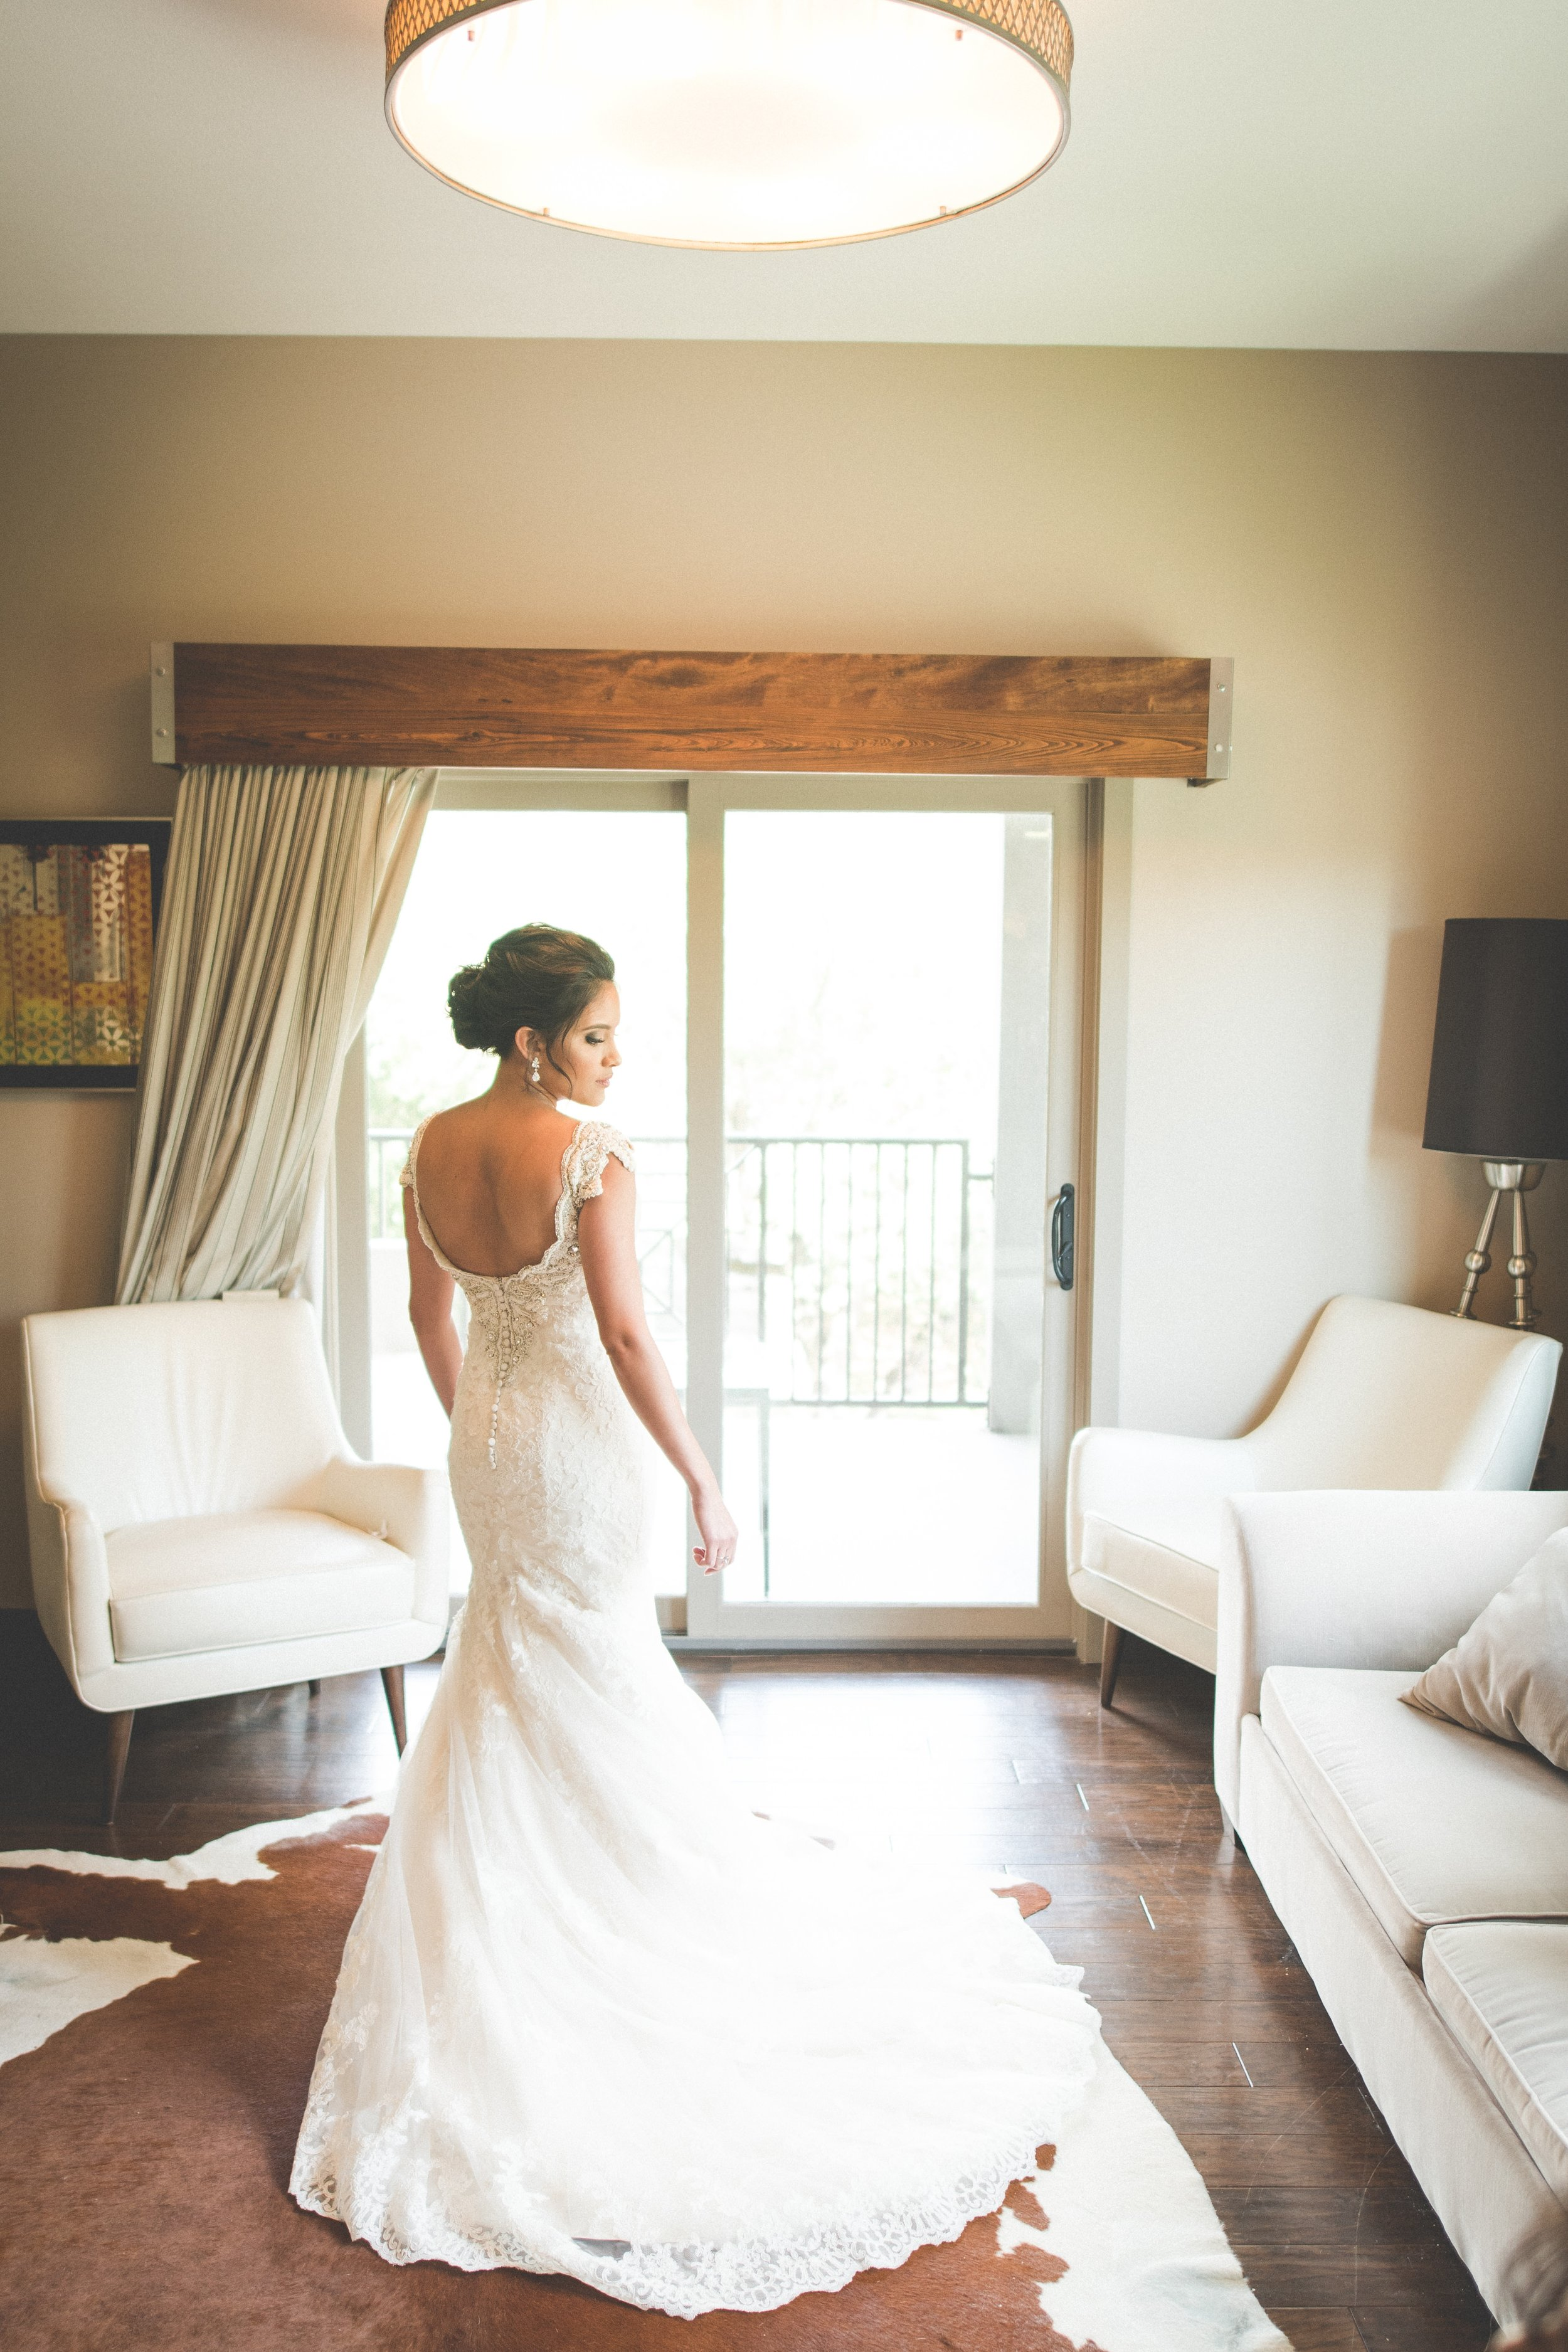 The gorgeous bride wore an ivory, mermaid style lace gown, with a plunging back and beaded cap sleeve straps.